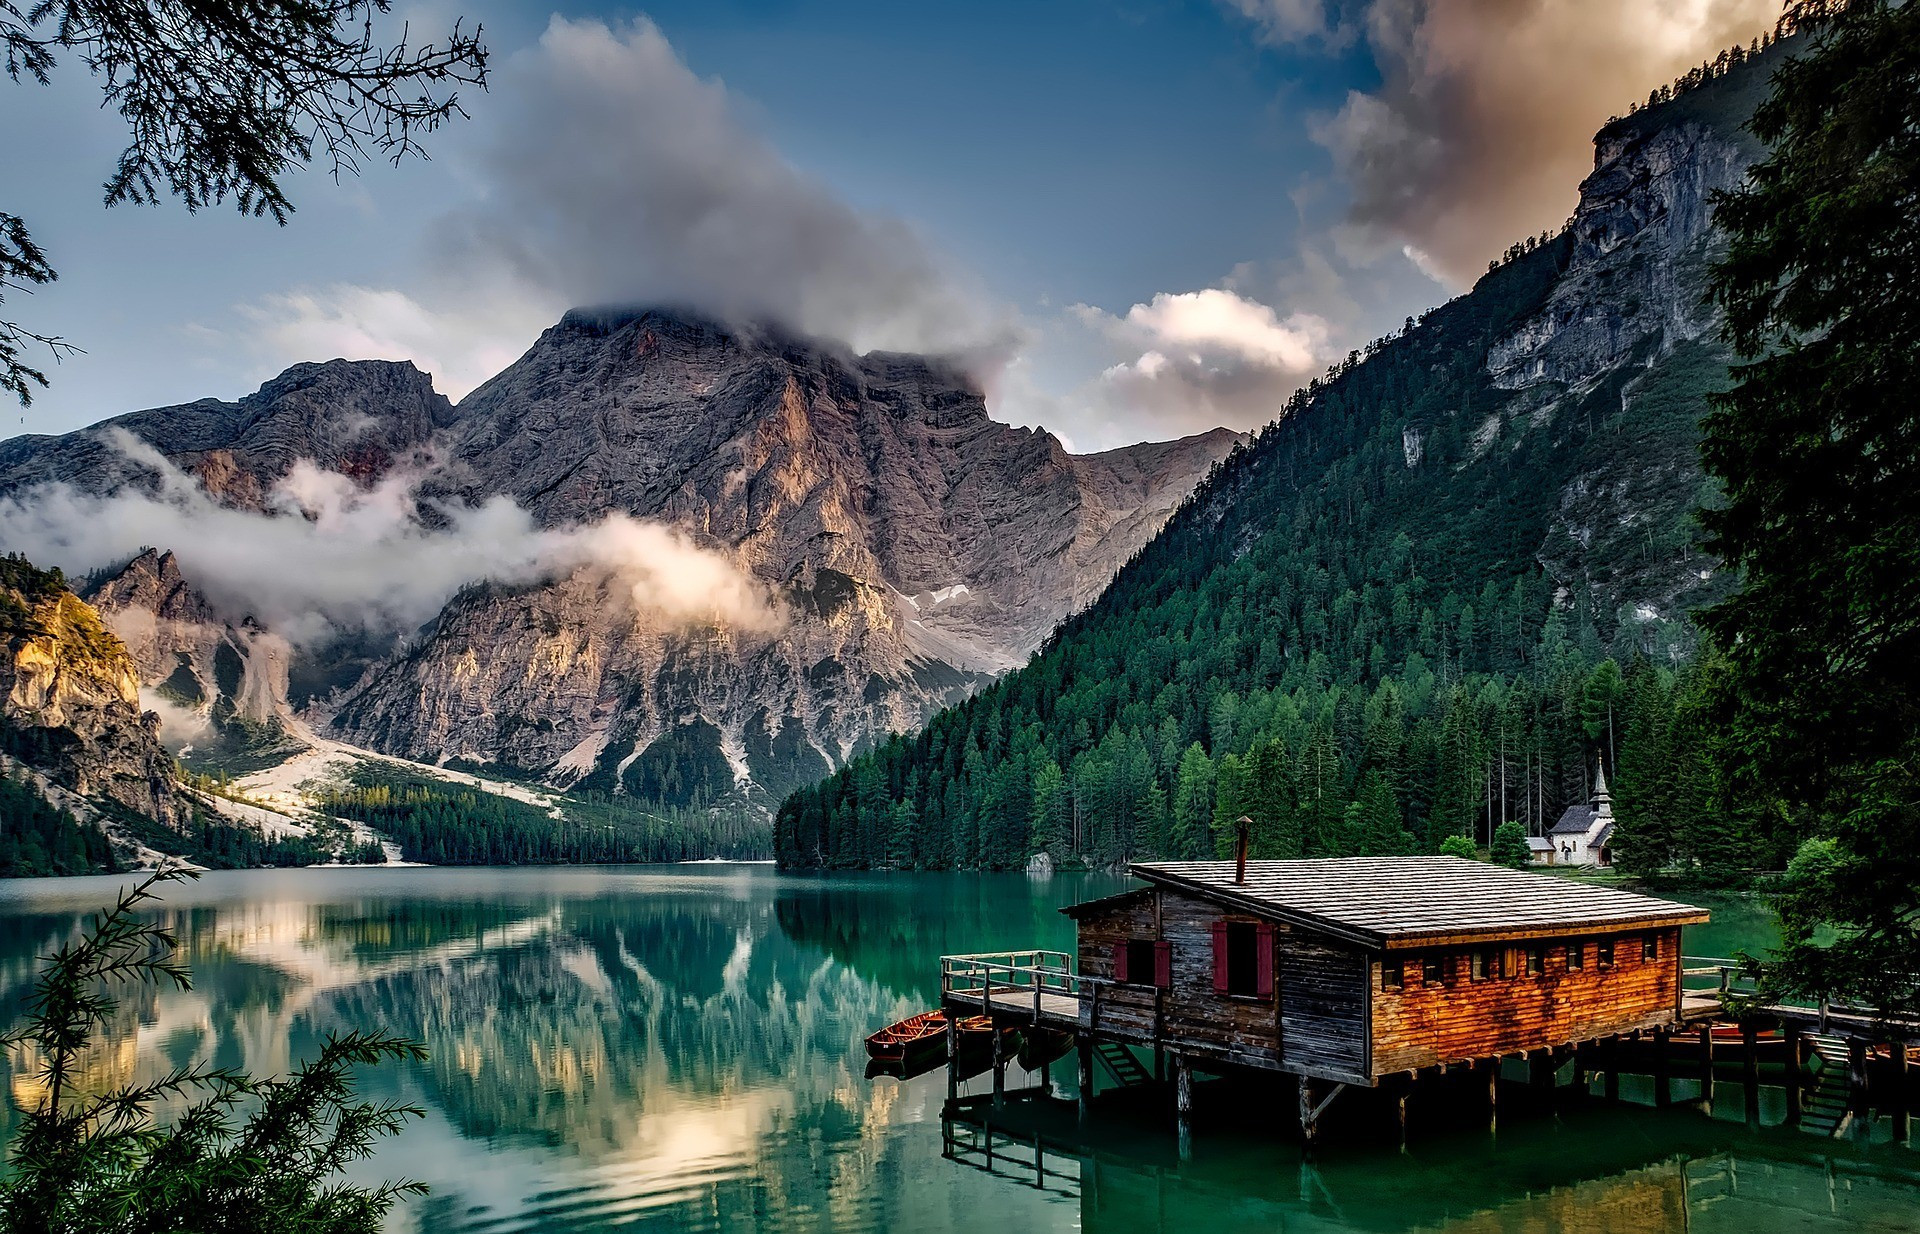 Beautiful Pragser Wildsee Lake in the Dolomite Mountains